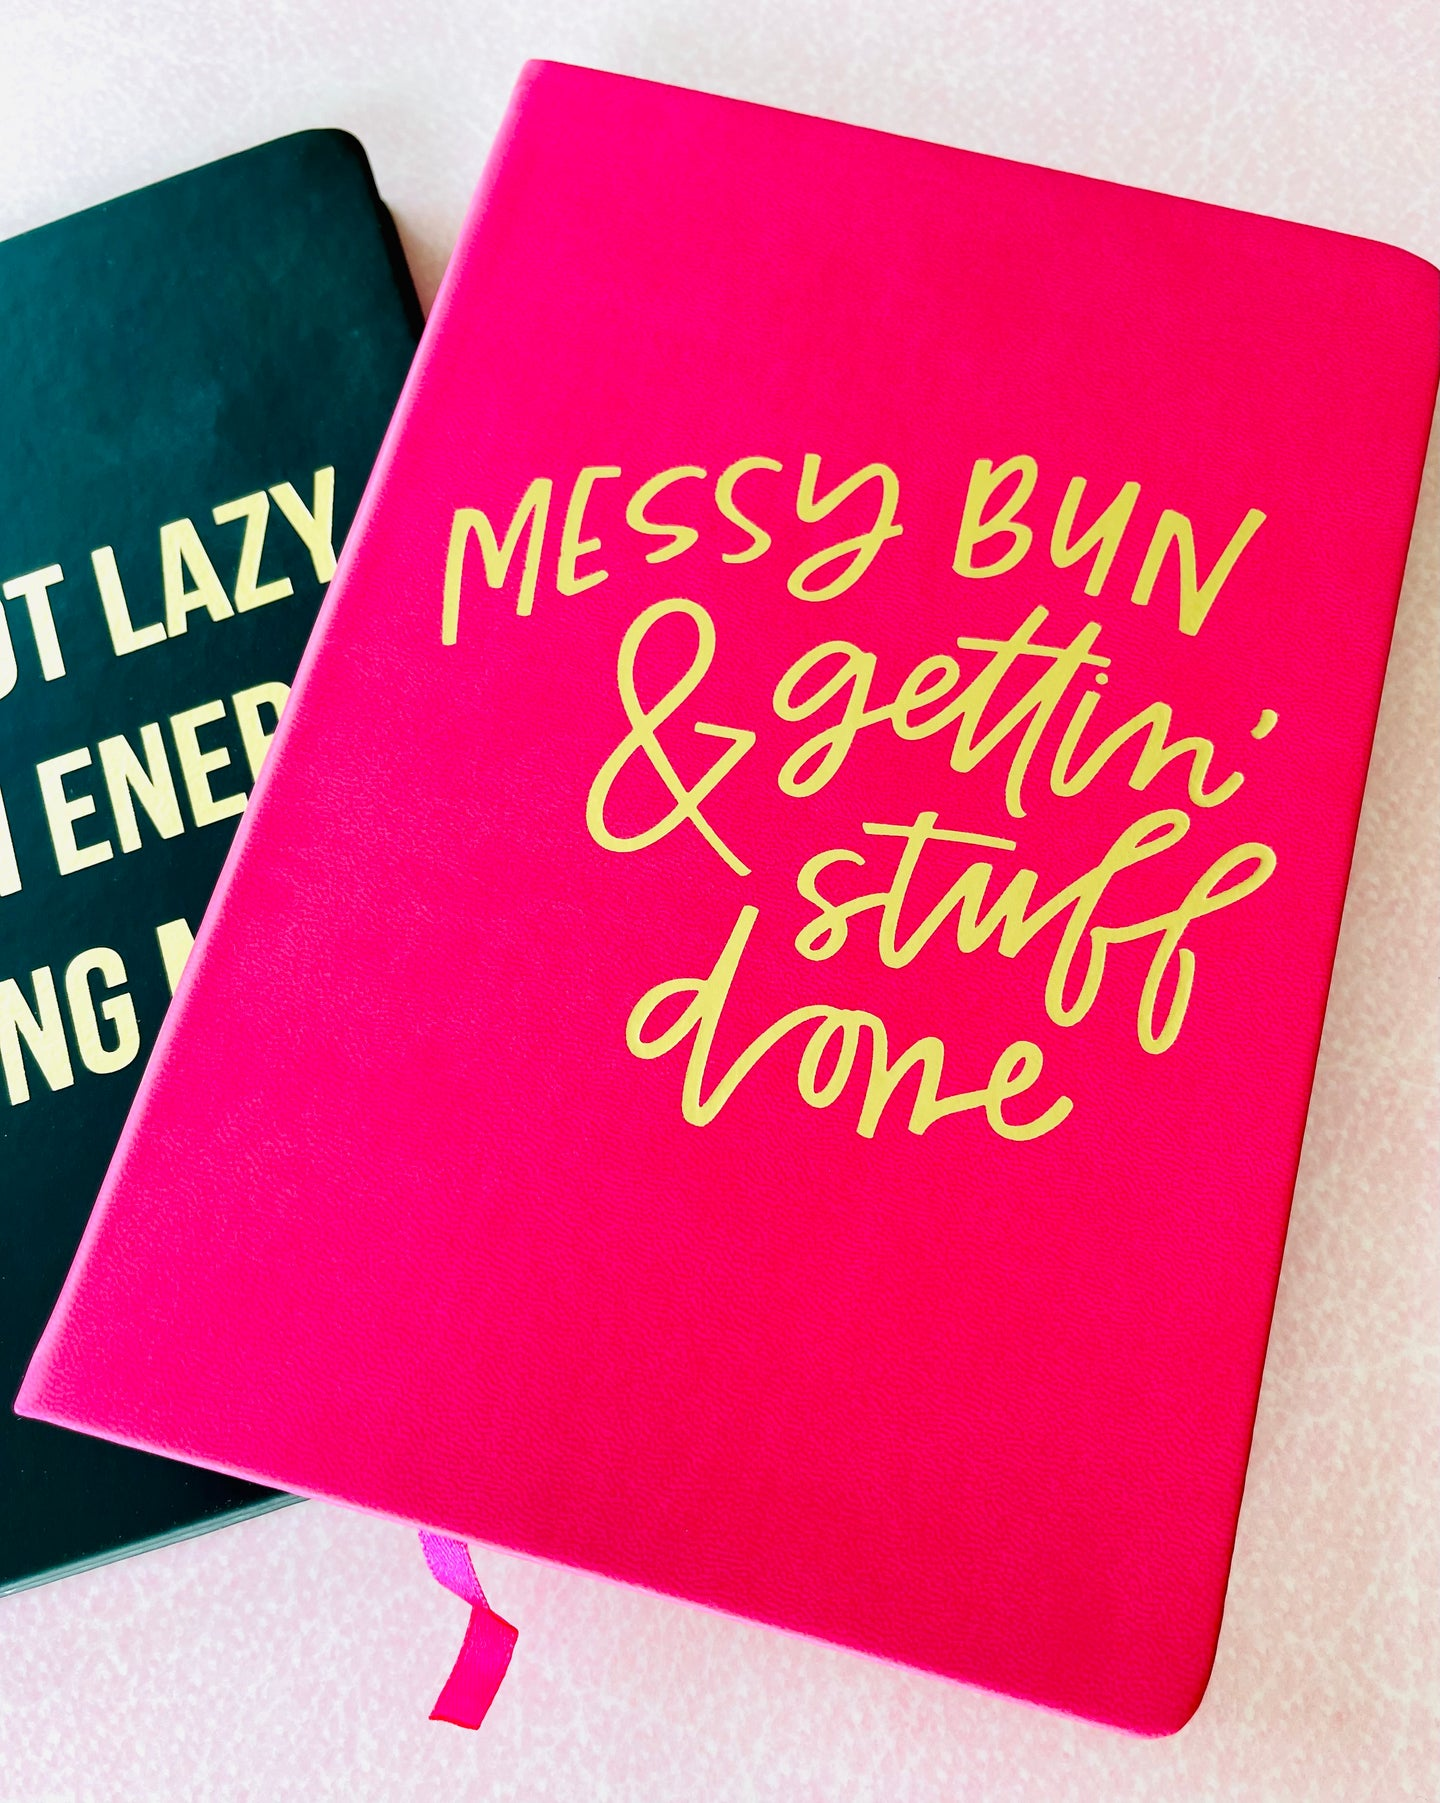 Messy Bun Journal - The Dallas Gordon Collection